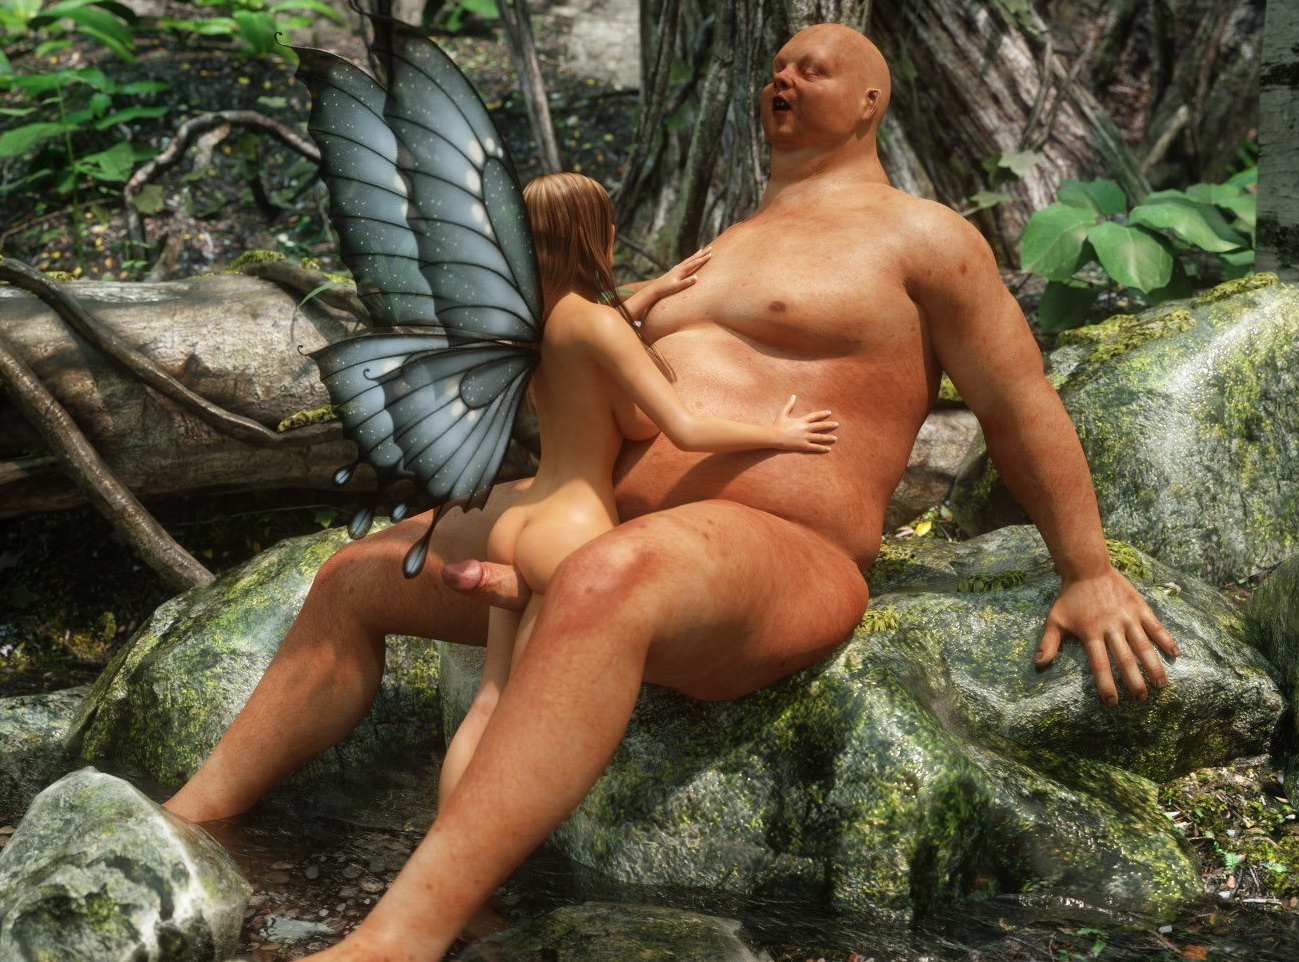 Fairy fuck giant 3d video naked scenes